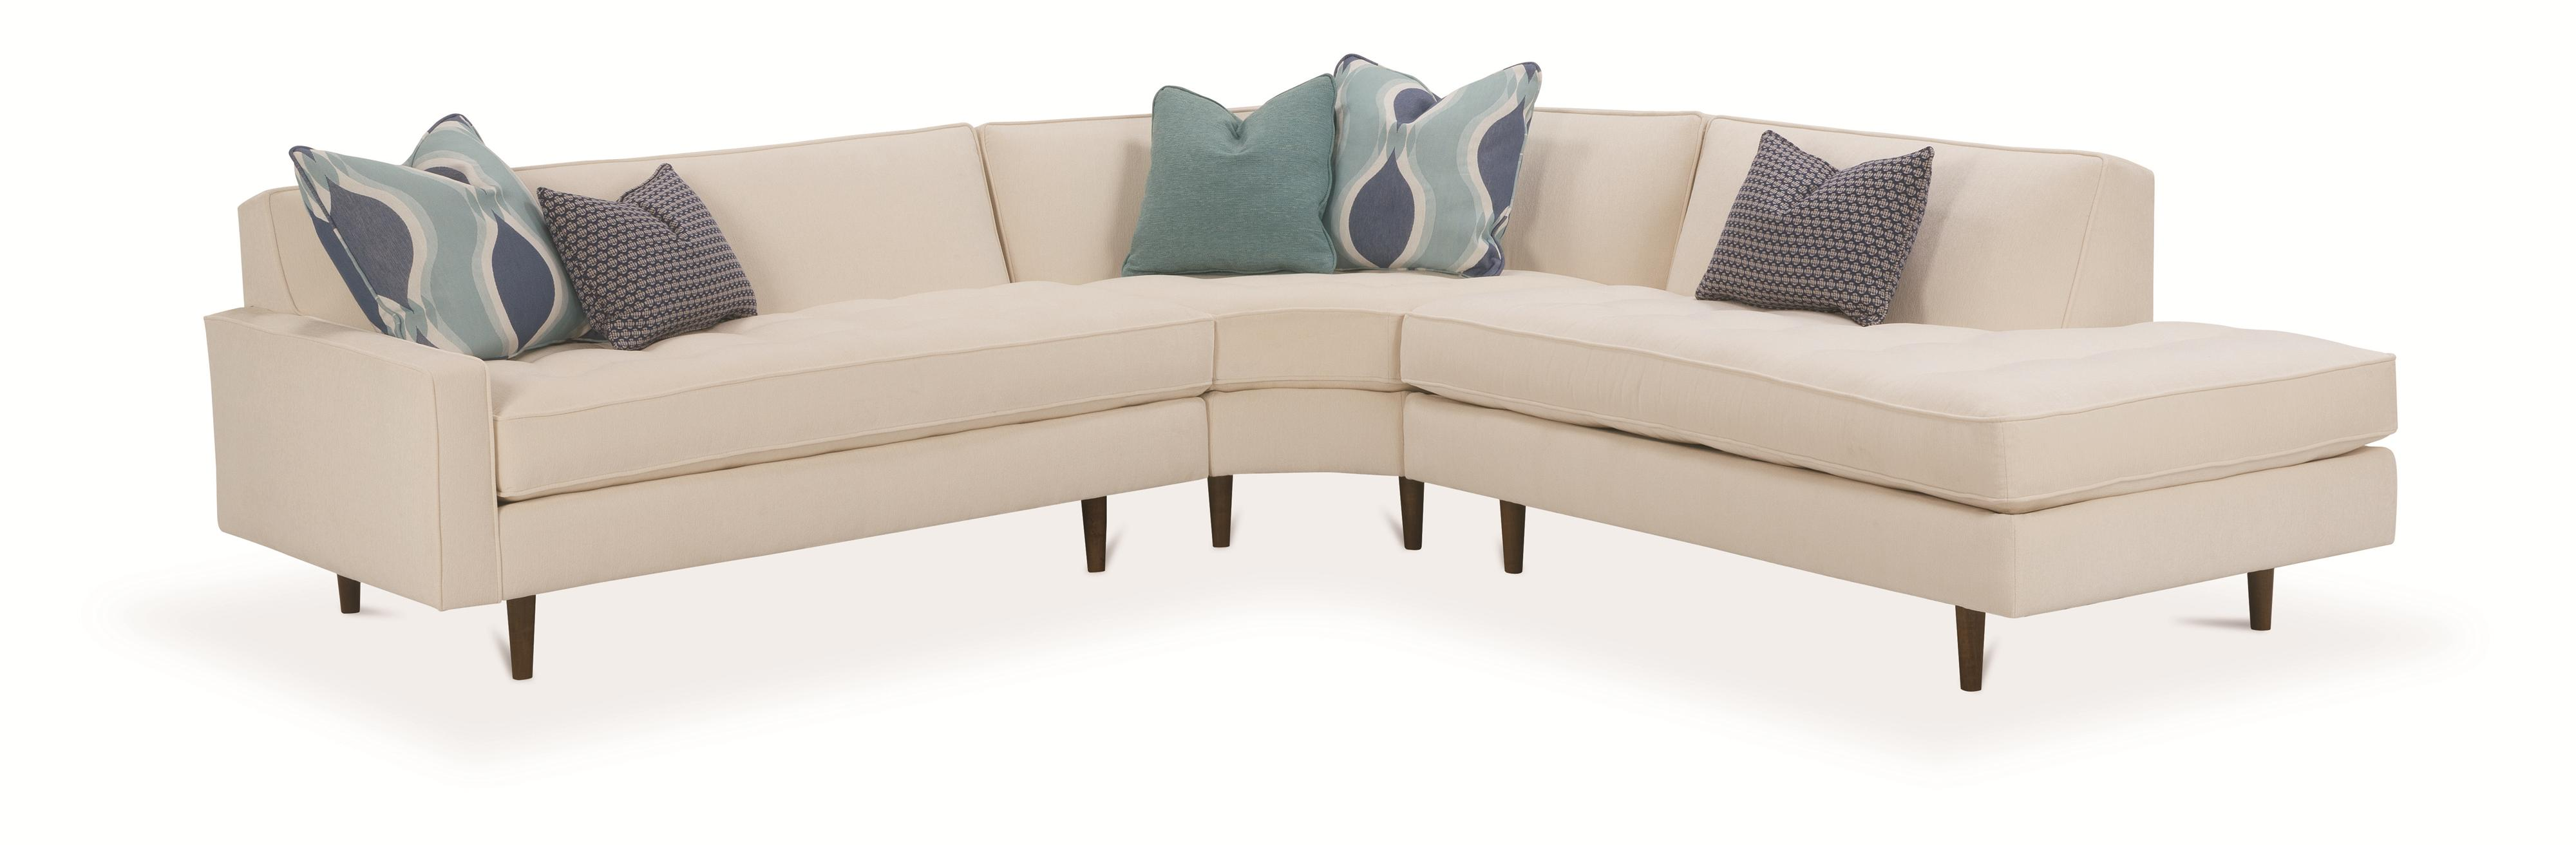 Rowe Brady  Contemporary 3 Piece Sectional Sofa - Item Number: N710-114+011+127